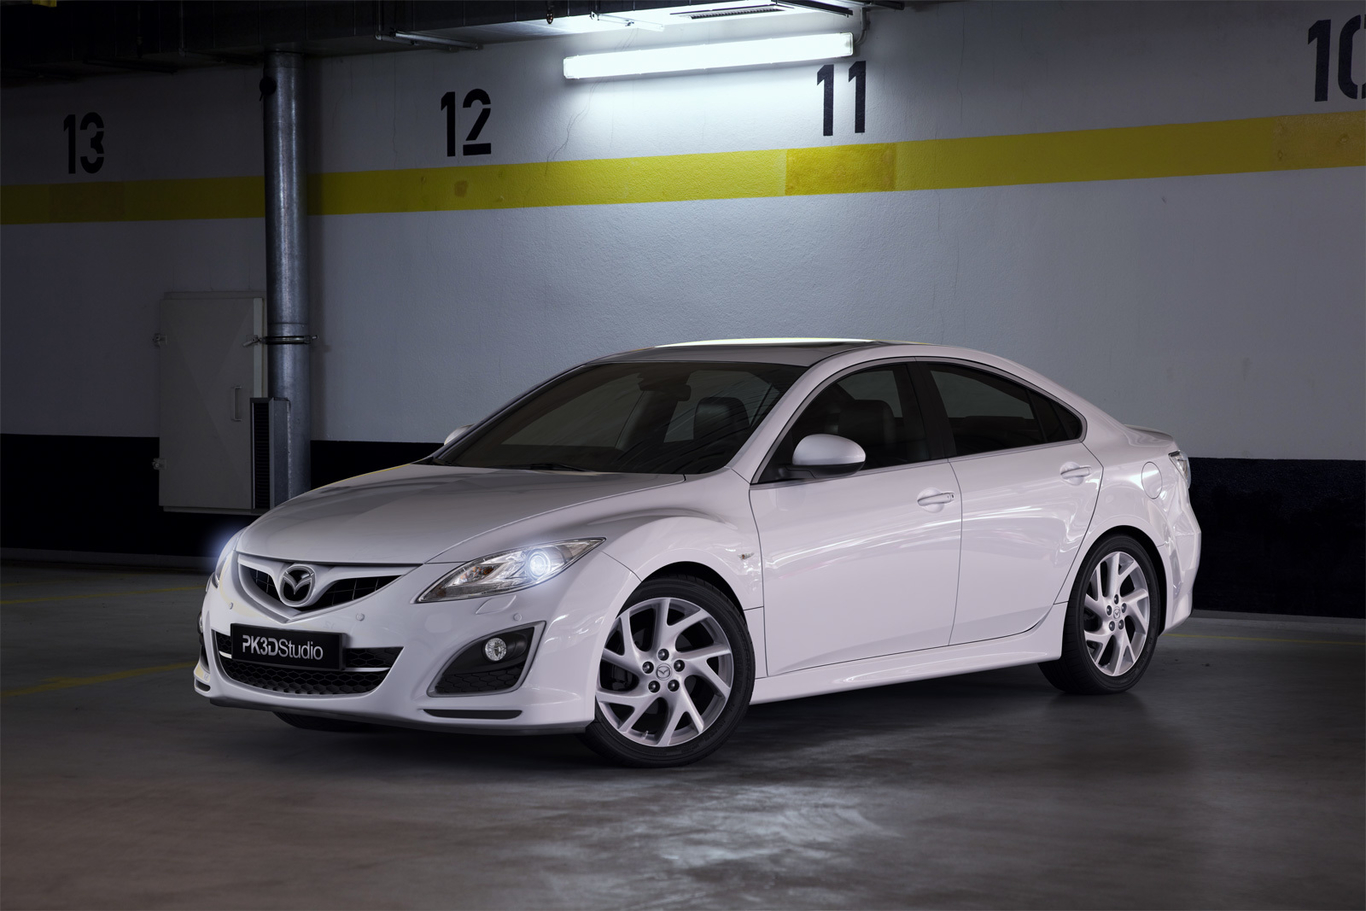 Pk3dstudio mazda 6 parking lot 1 e963c536 whm4